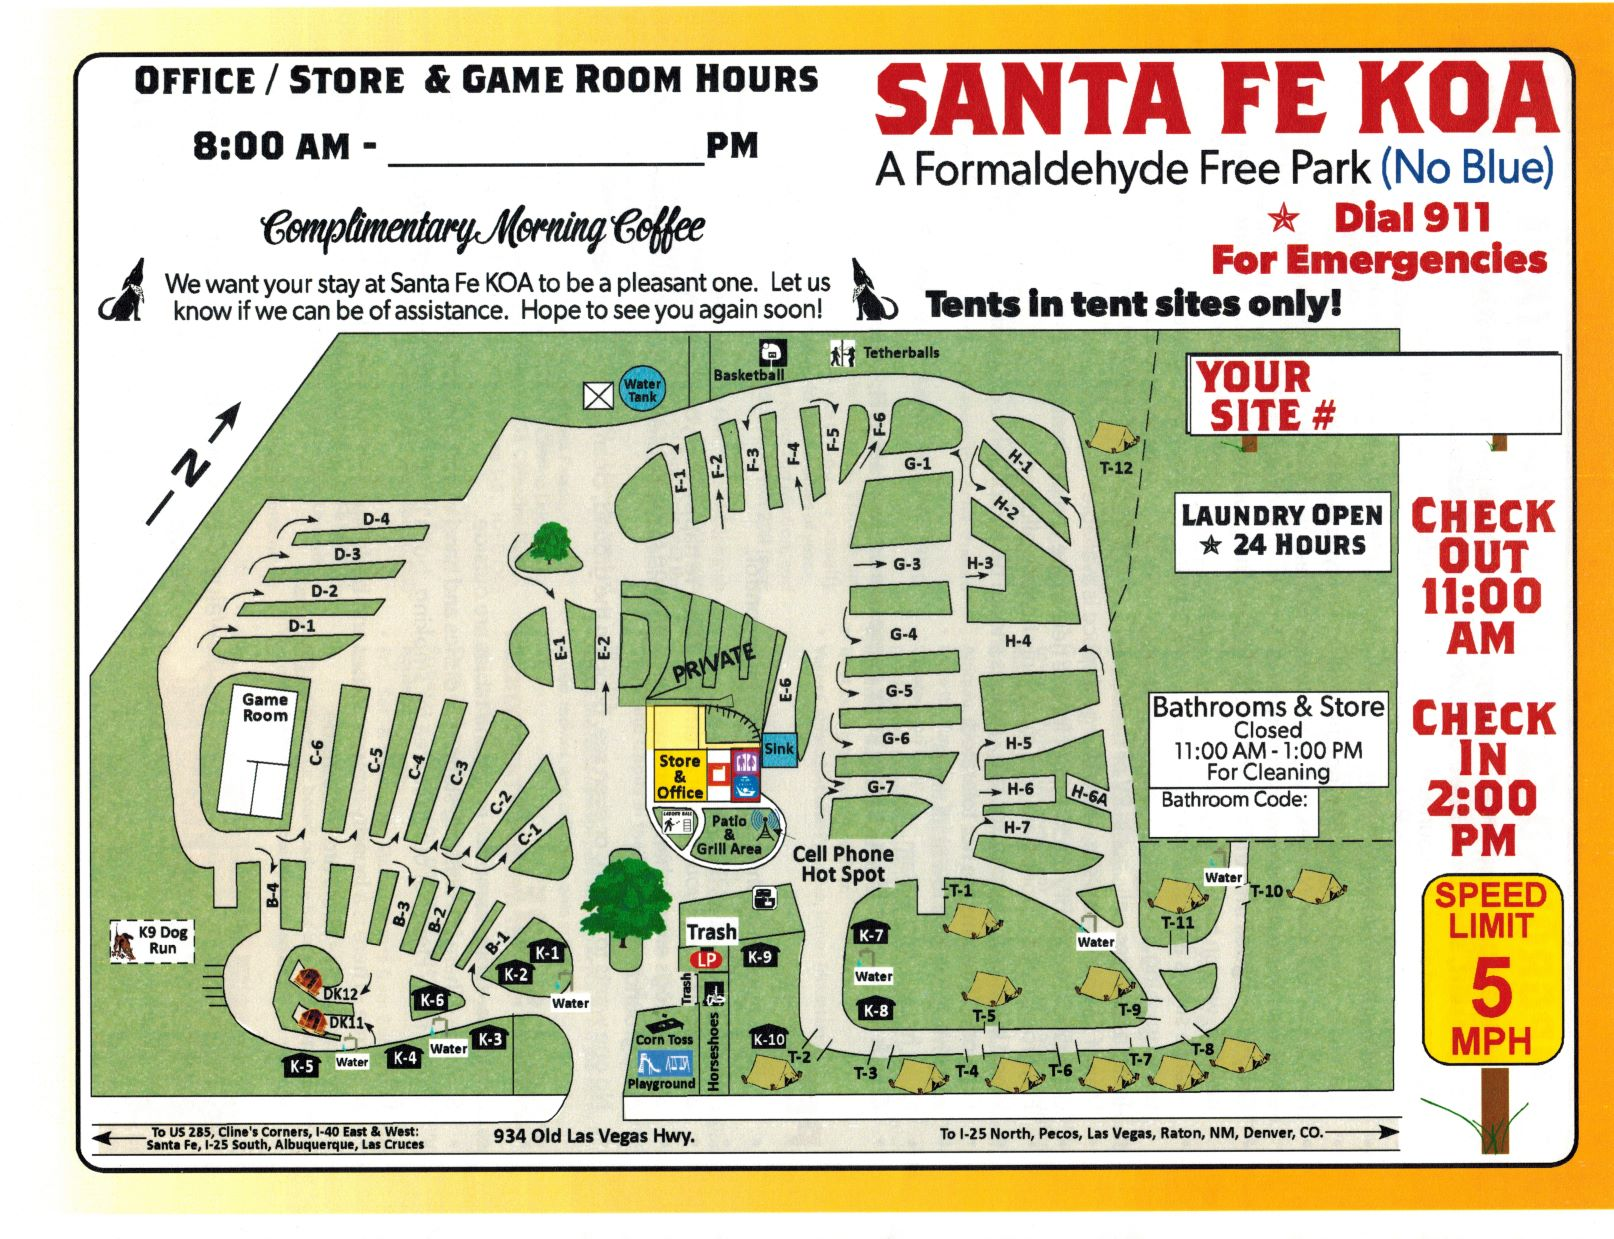 Santa Fe New Mexico Campground Map Santa Fe Koa